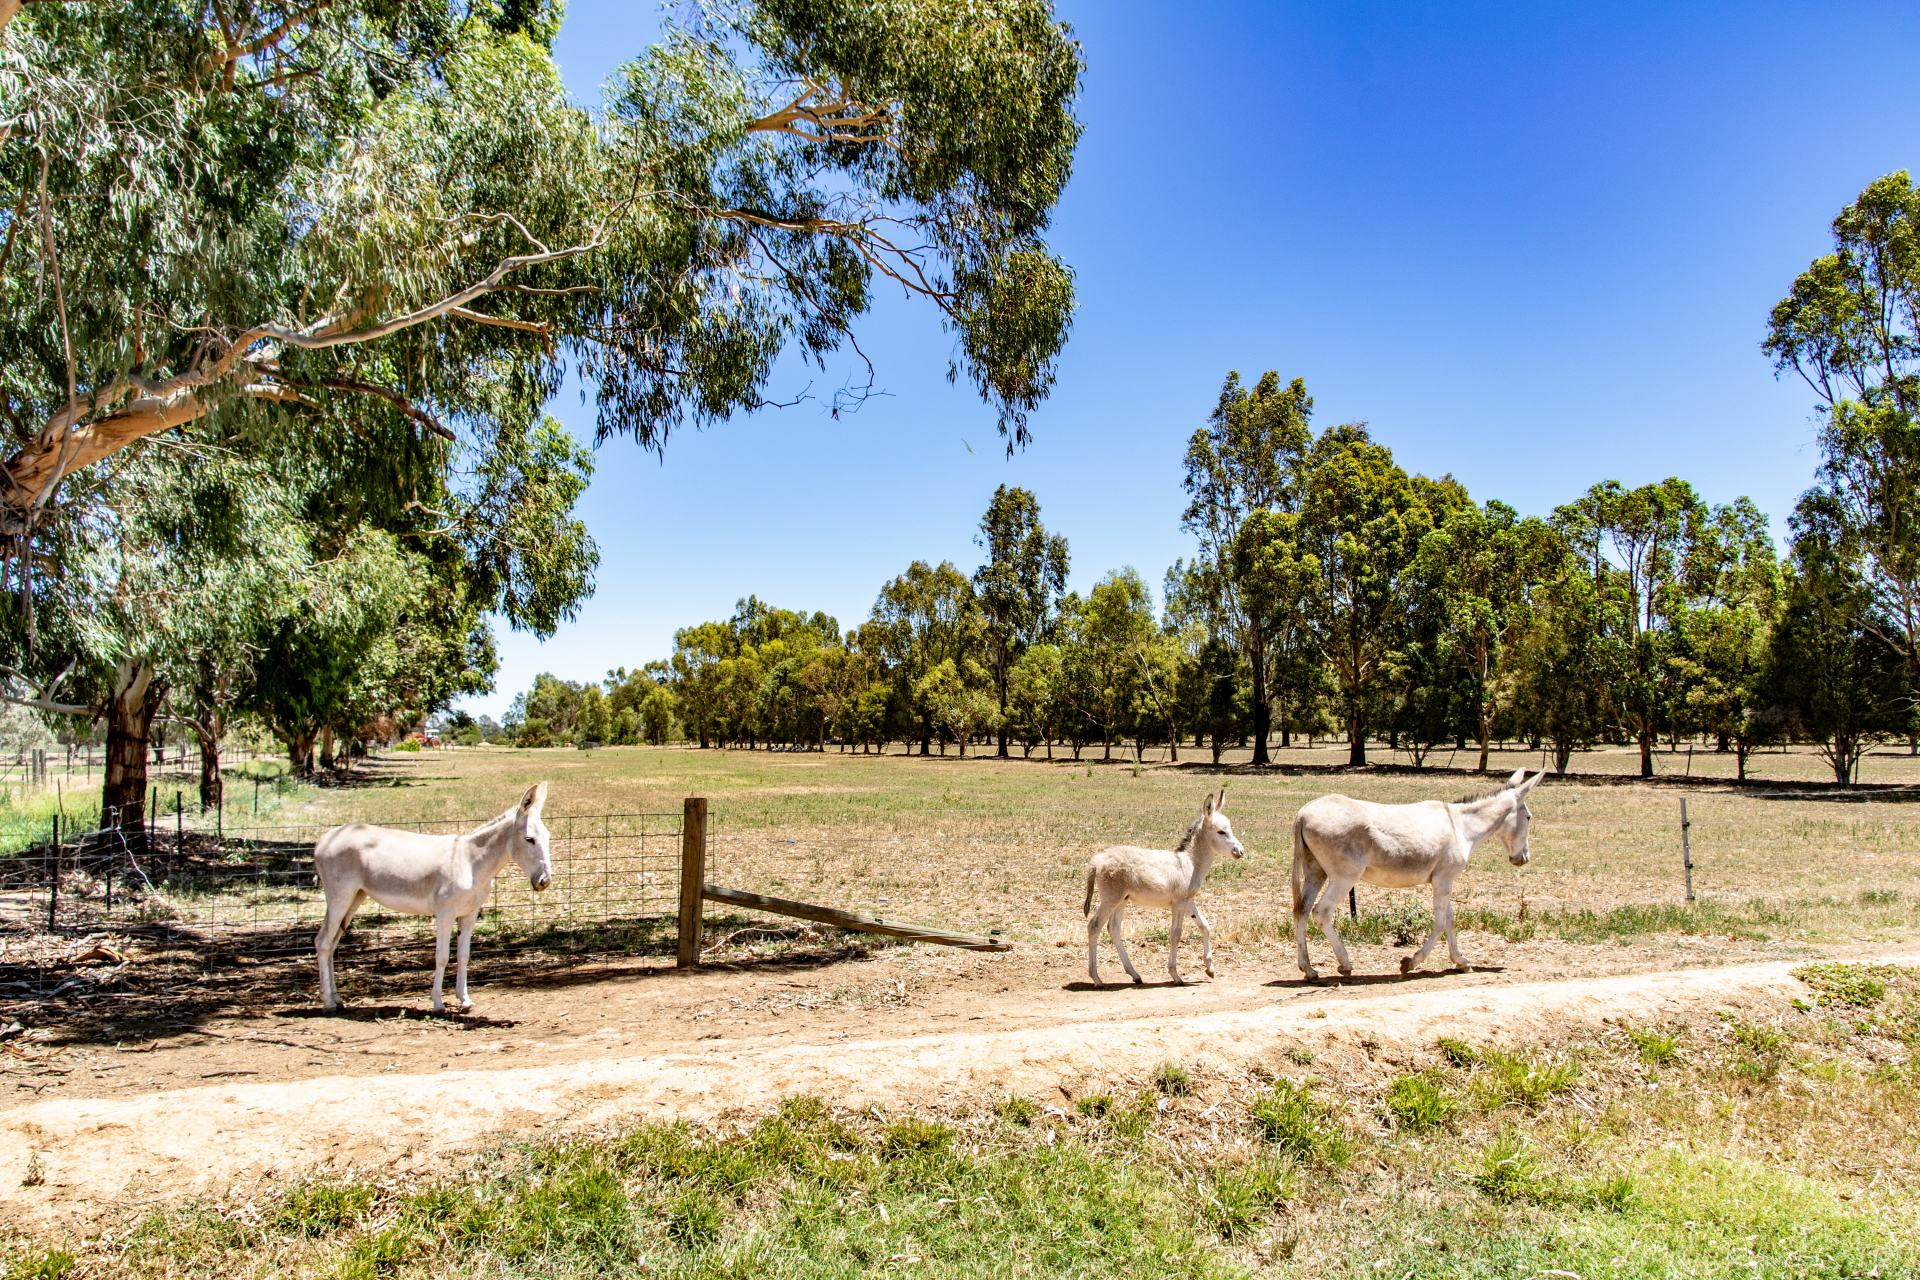 donkeys at cactus country